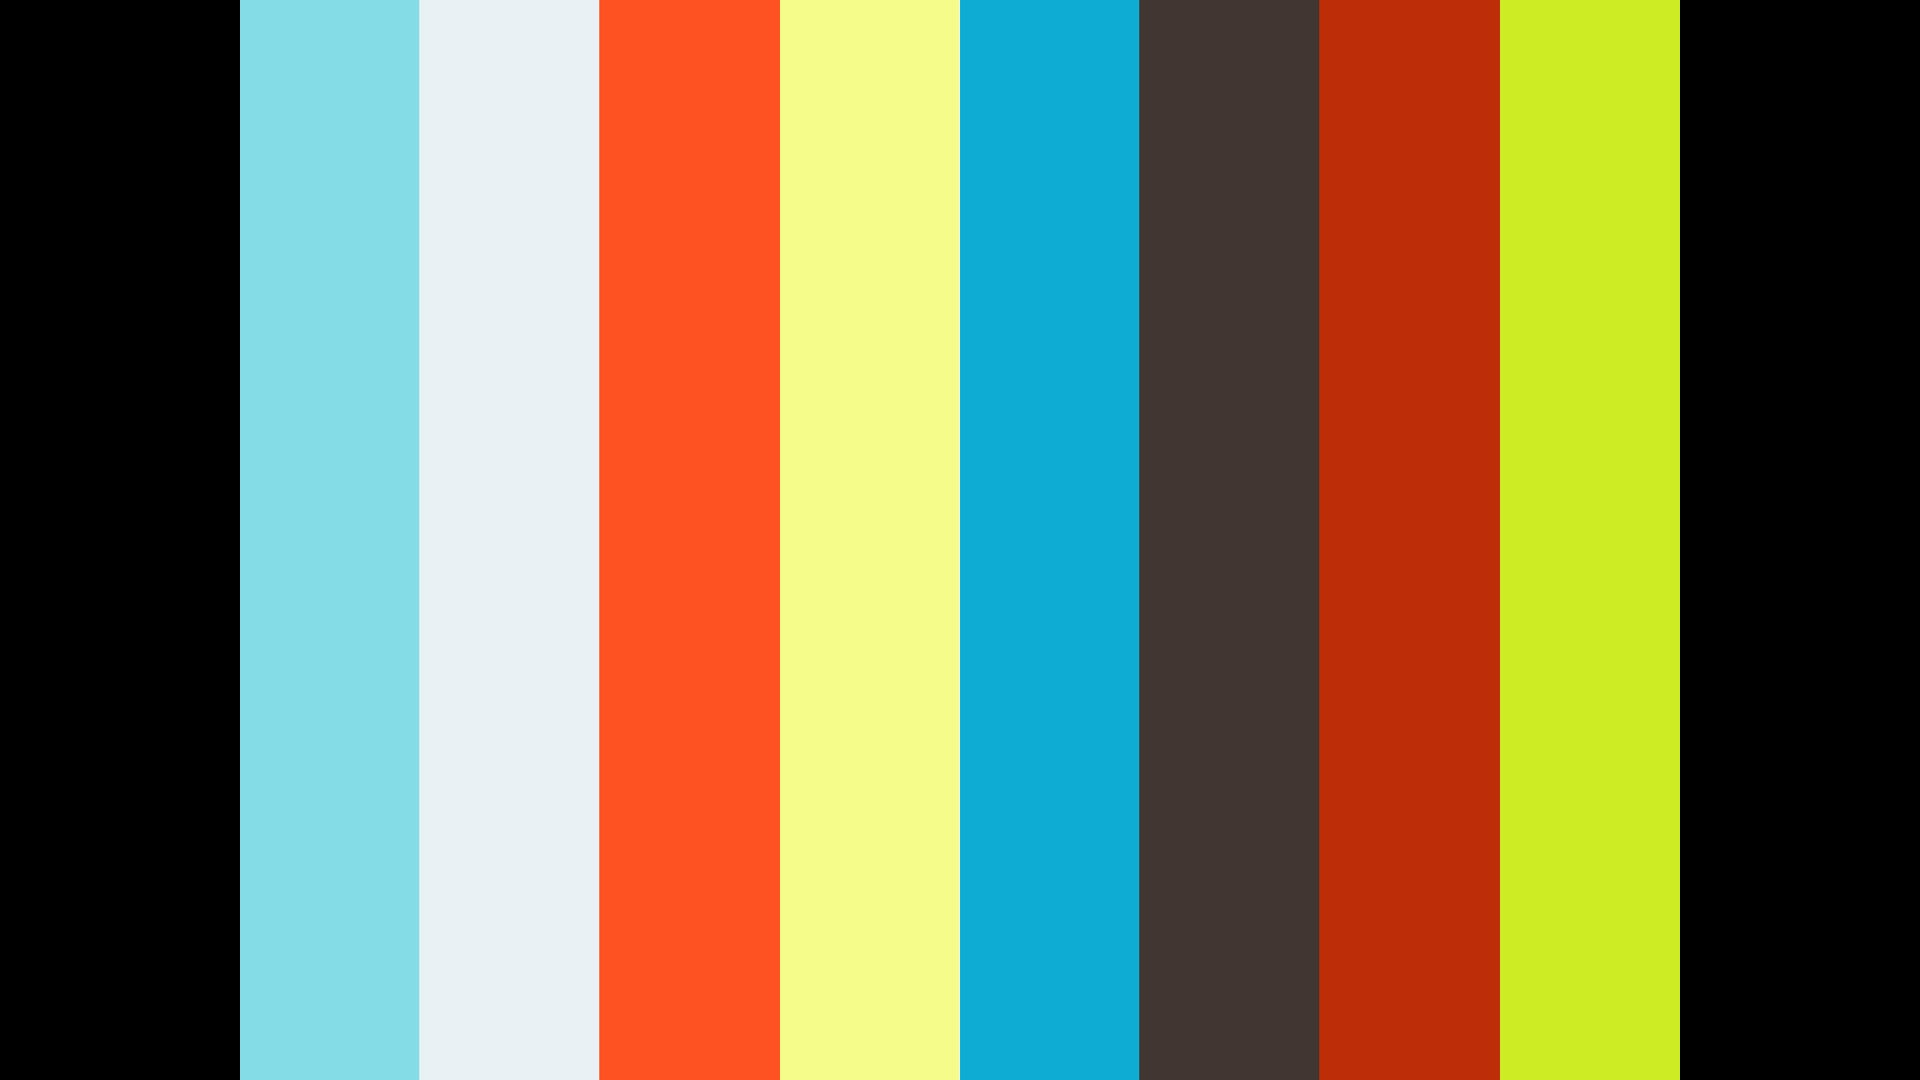 Colors and Letters Cognitive Challenge